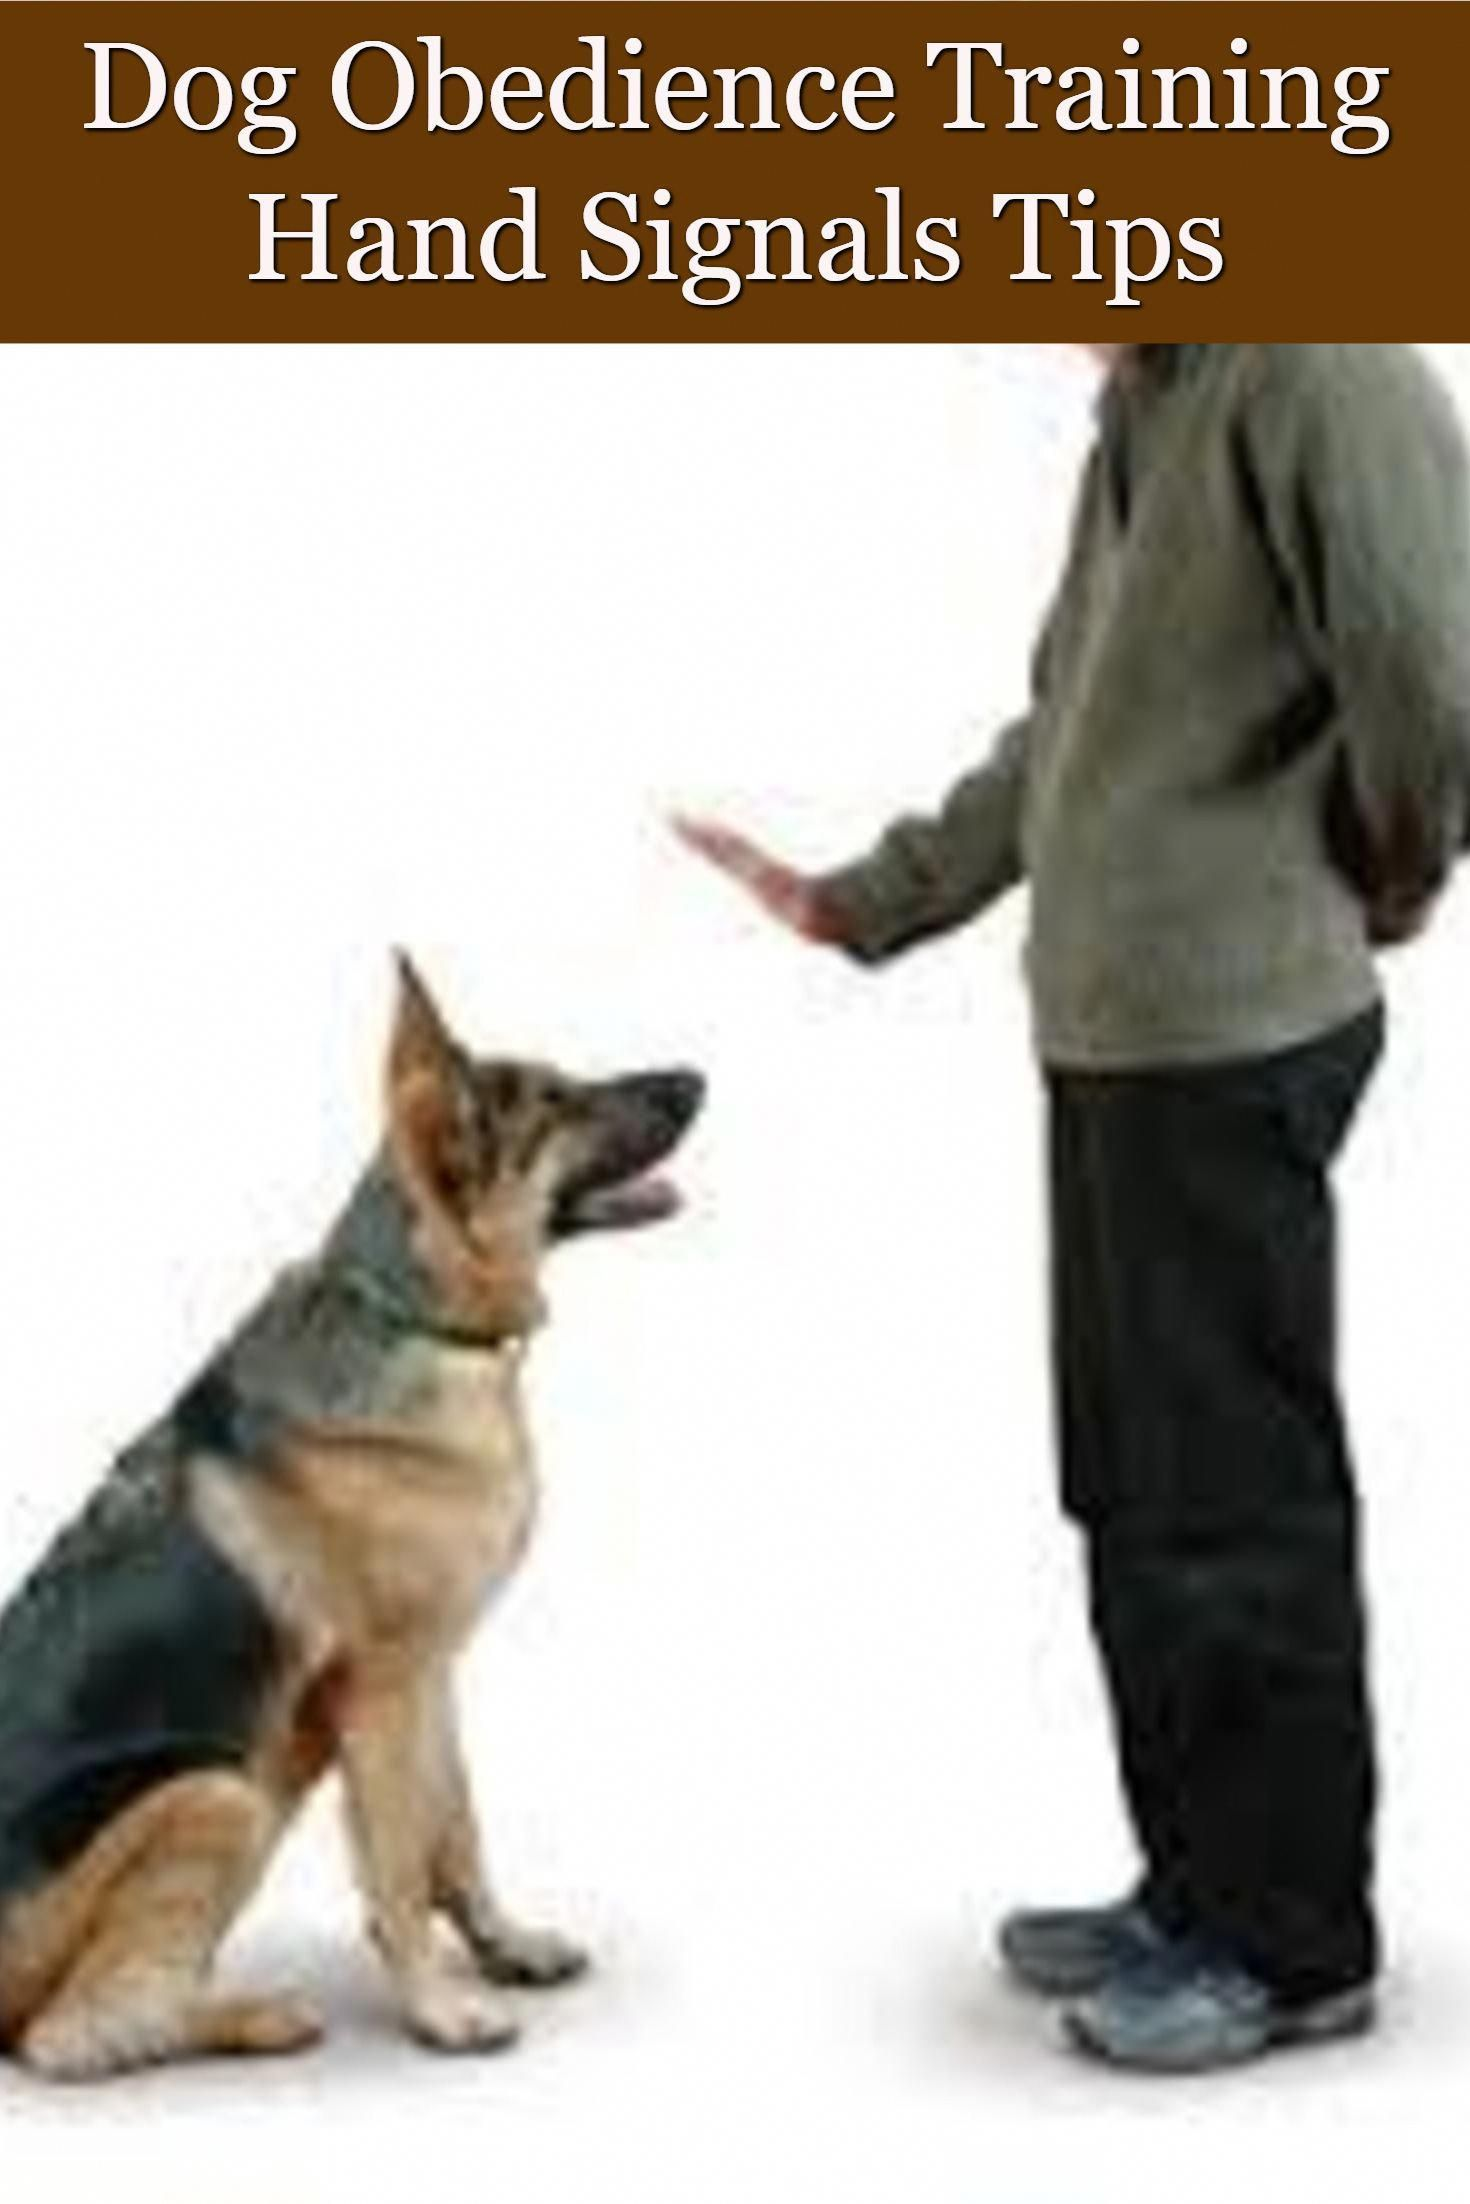 Home Training Tips To Stop Dog Aggression Aggressive Dog